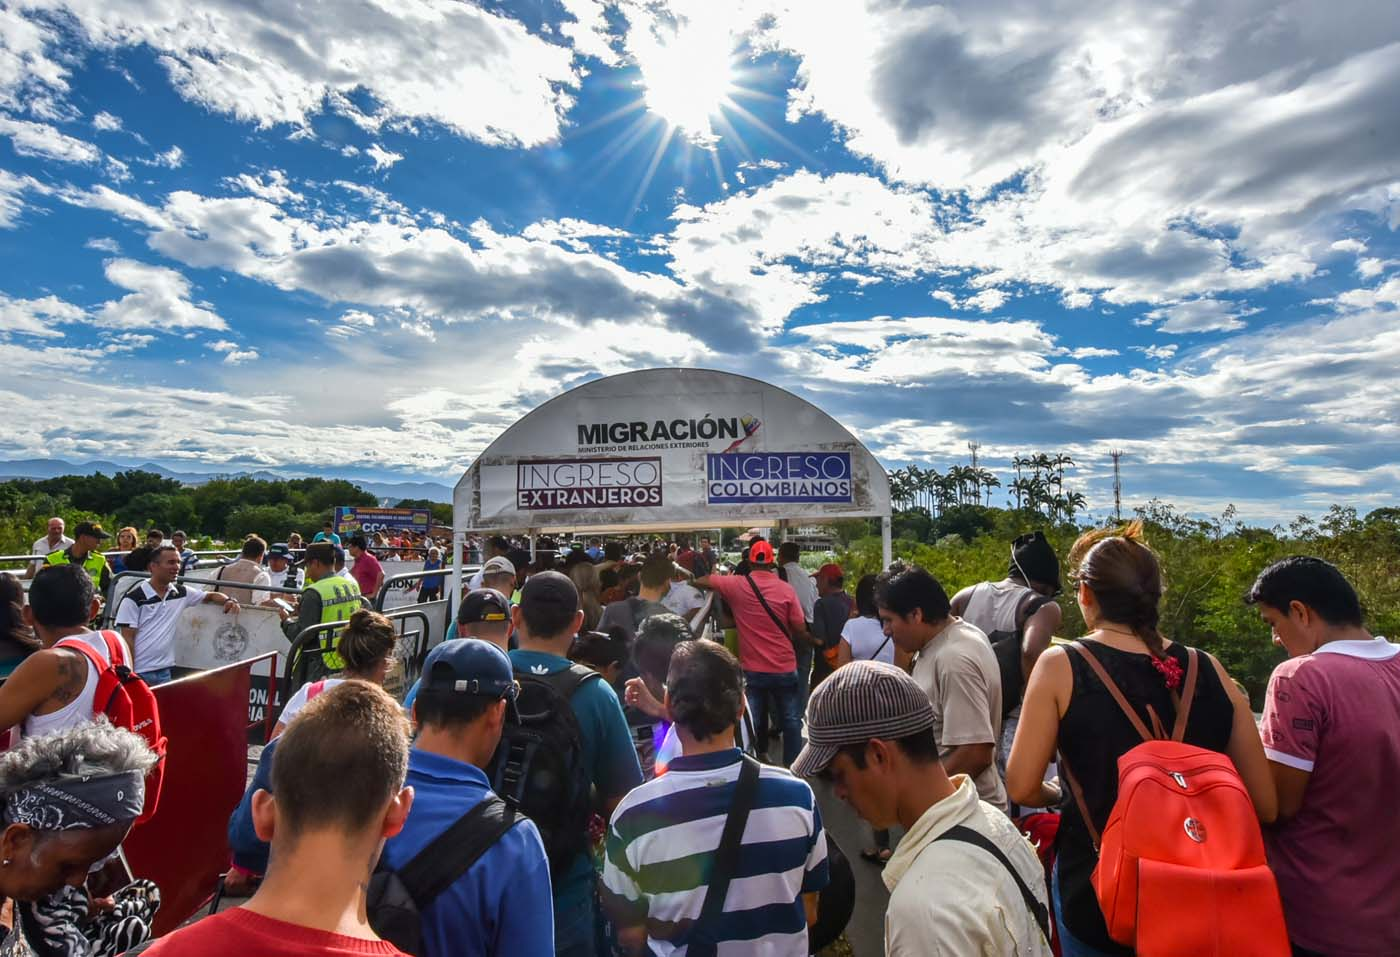 Venezuelan citizens queue to cross the Simon Bolivar international bridge from San Antonio del Tachira, Venezuela to Cucuta, Norte de Santander Department, Colombia, on July 25, 2017. Some 25.000 Venezuelans cross to Colombia and return to their country daily with food, consumables and money from ilegal work, according to official sources. Also, there are 47.000 Venezuelans in Colombia with legal migratory status and another 150.000 who have already completed the 90 allowed days and are now without visa. / AFP PHOTO / Luis Acosta